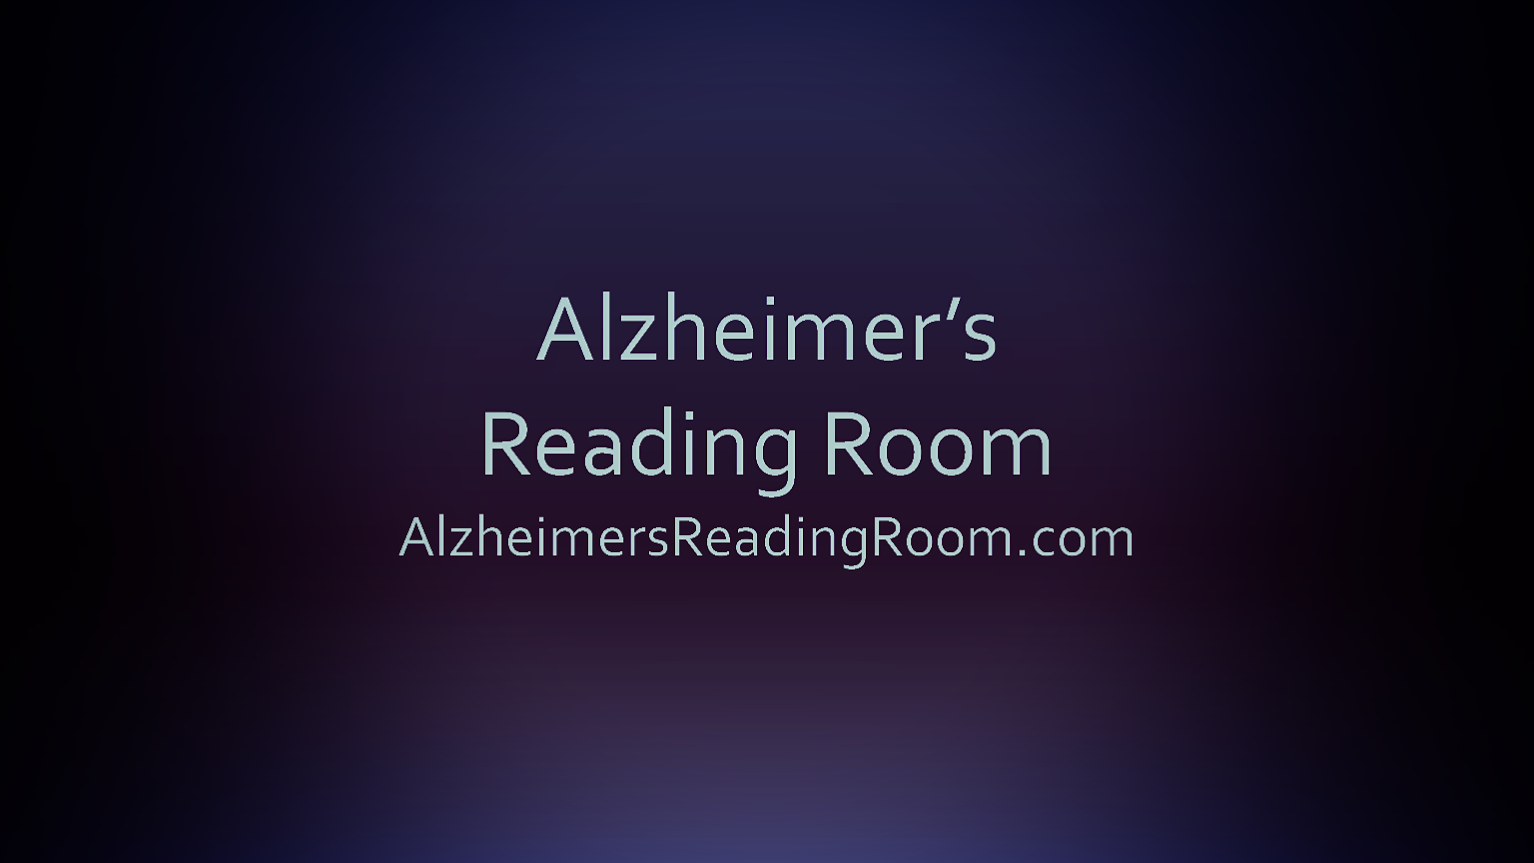 Alzheimer's Reading Room